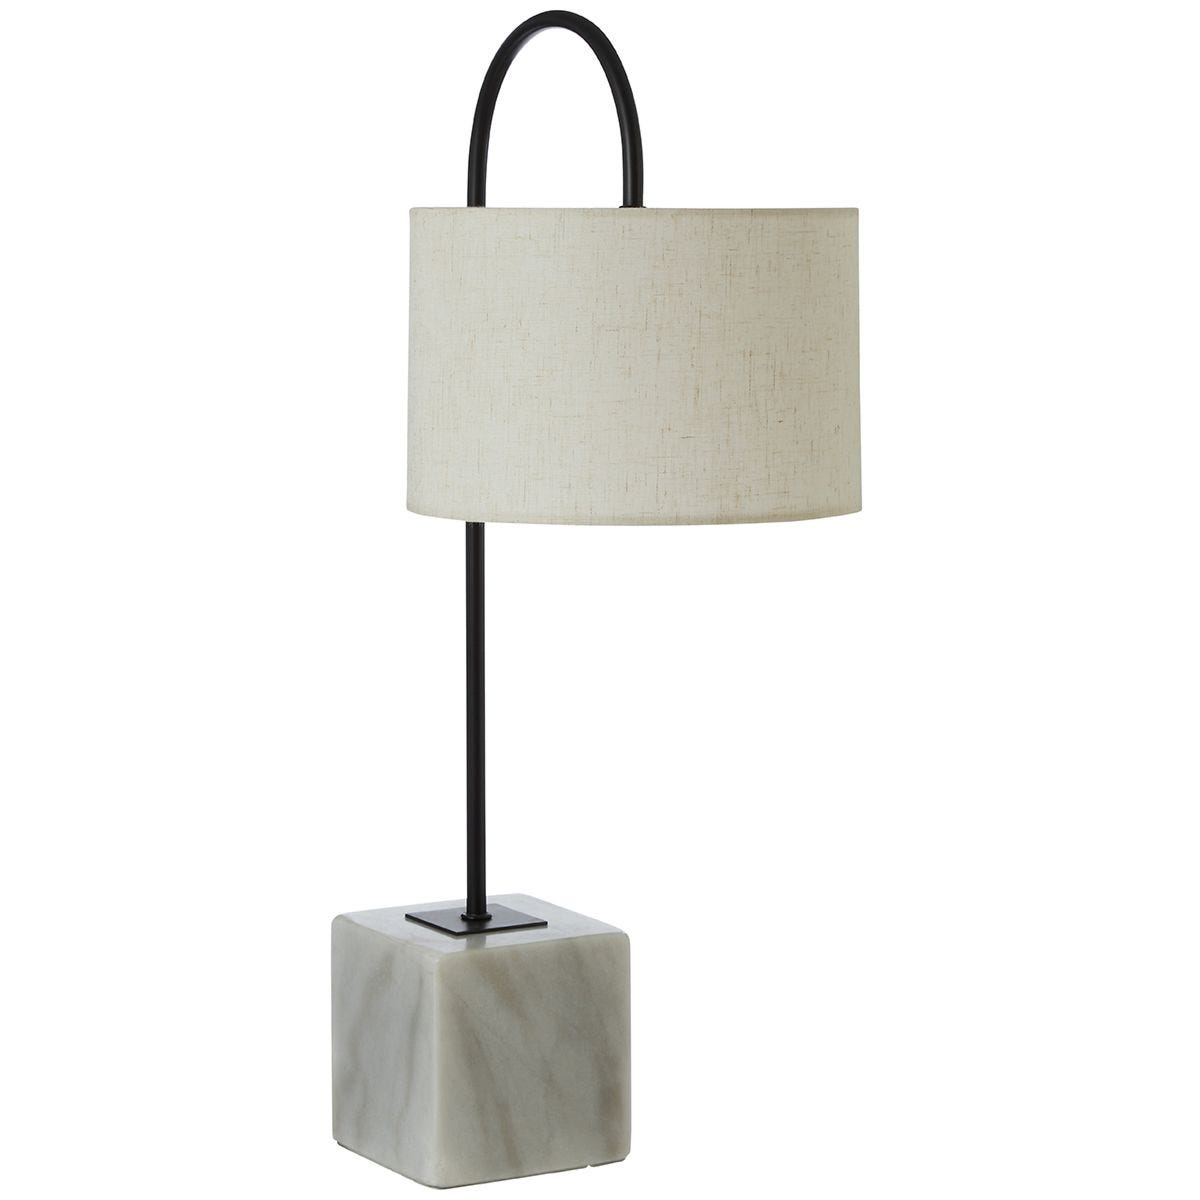 Premier Housewares Murdoch Curve Table Lamp with Marble Base & Linen Shade